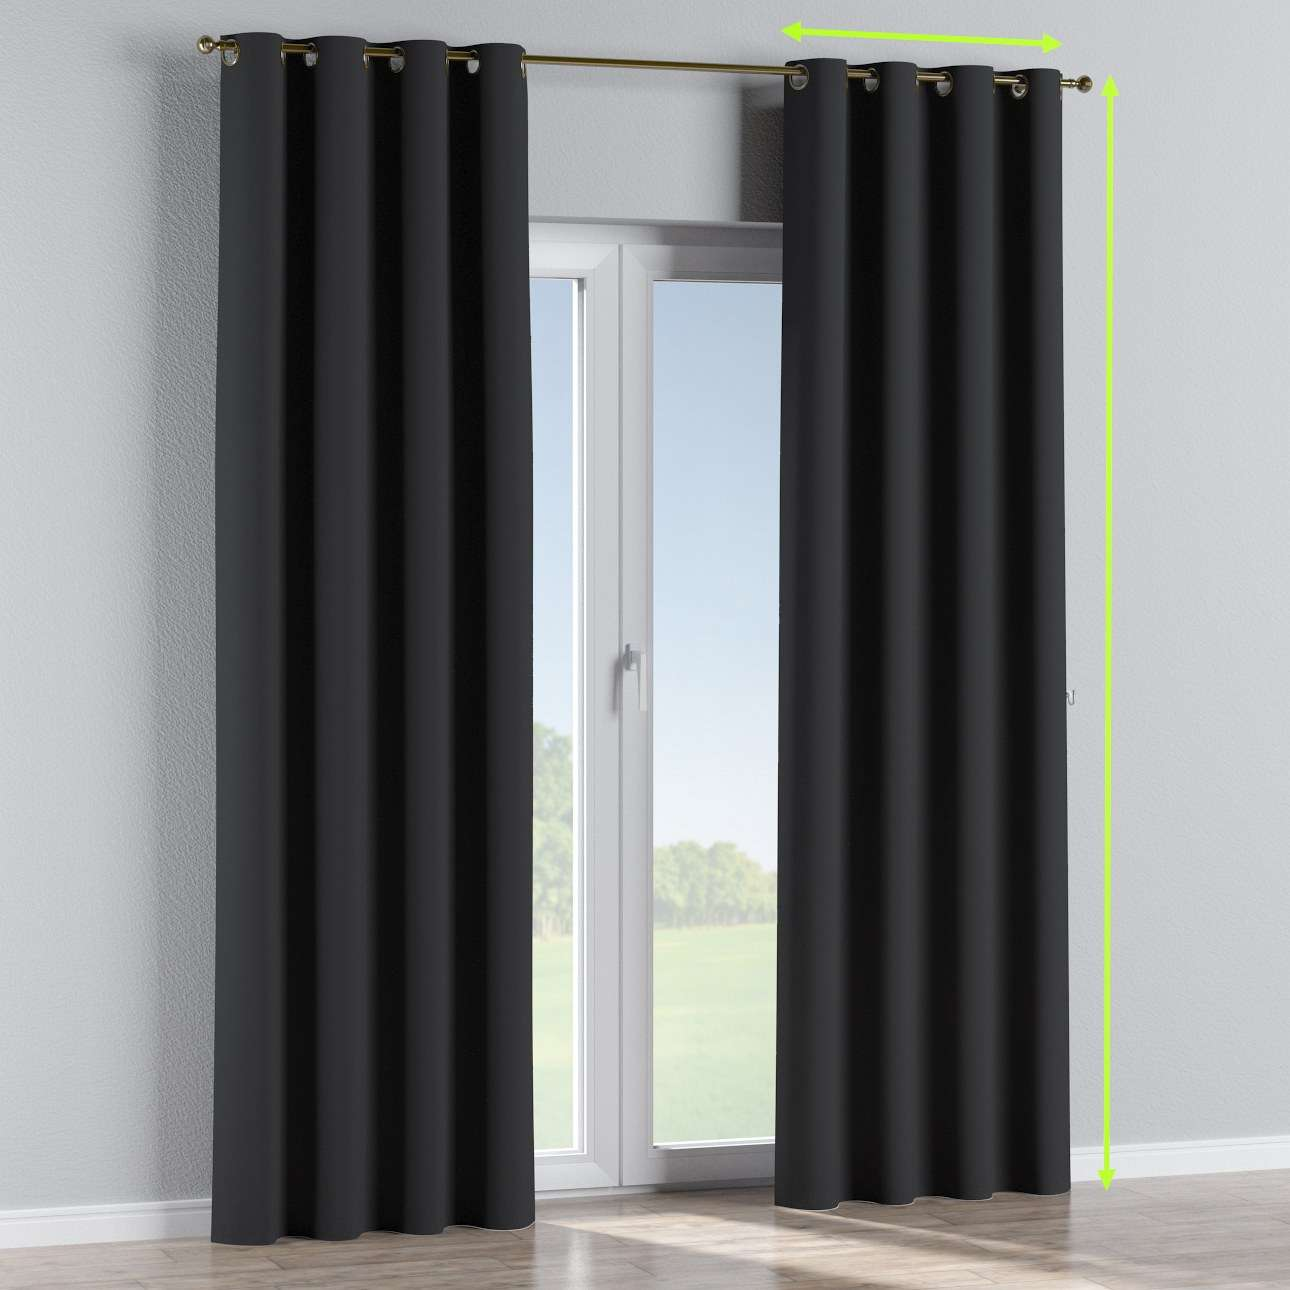 Eyelet curtain in collection Blackout, fabric: 269-99